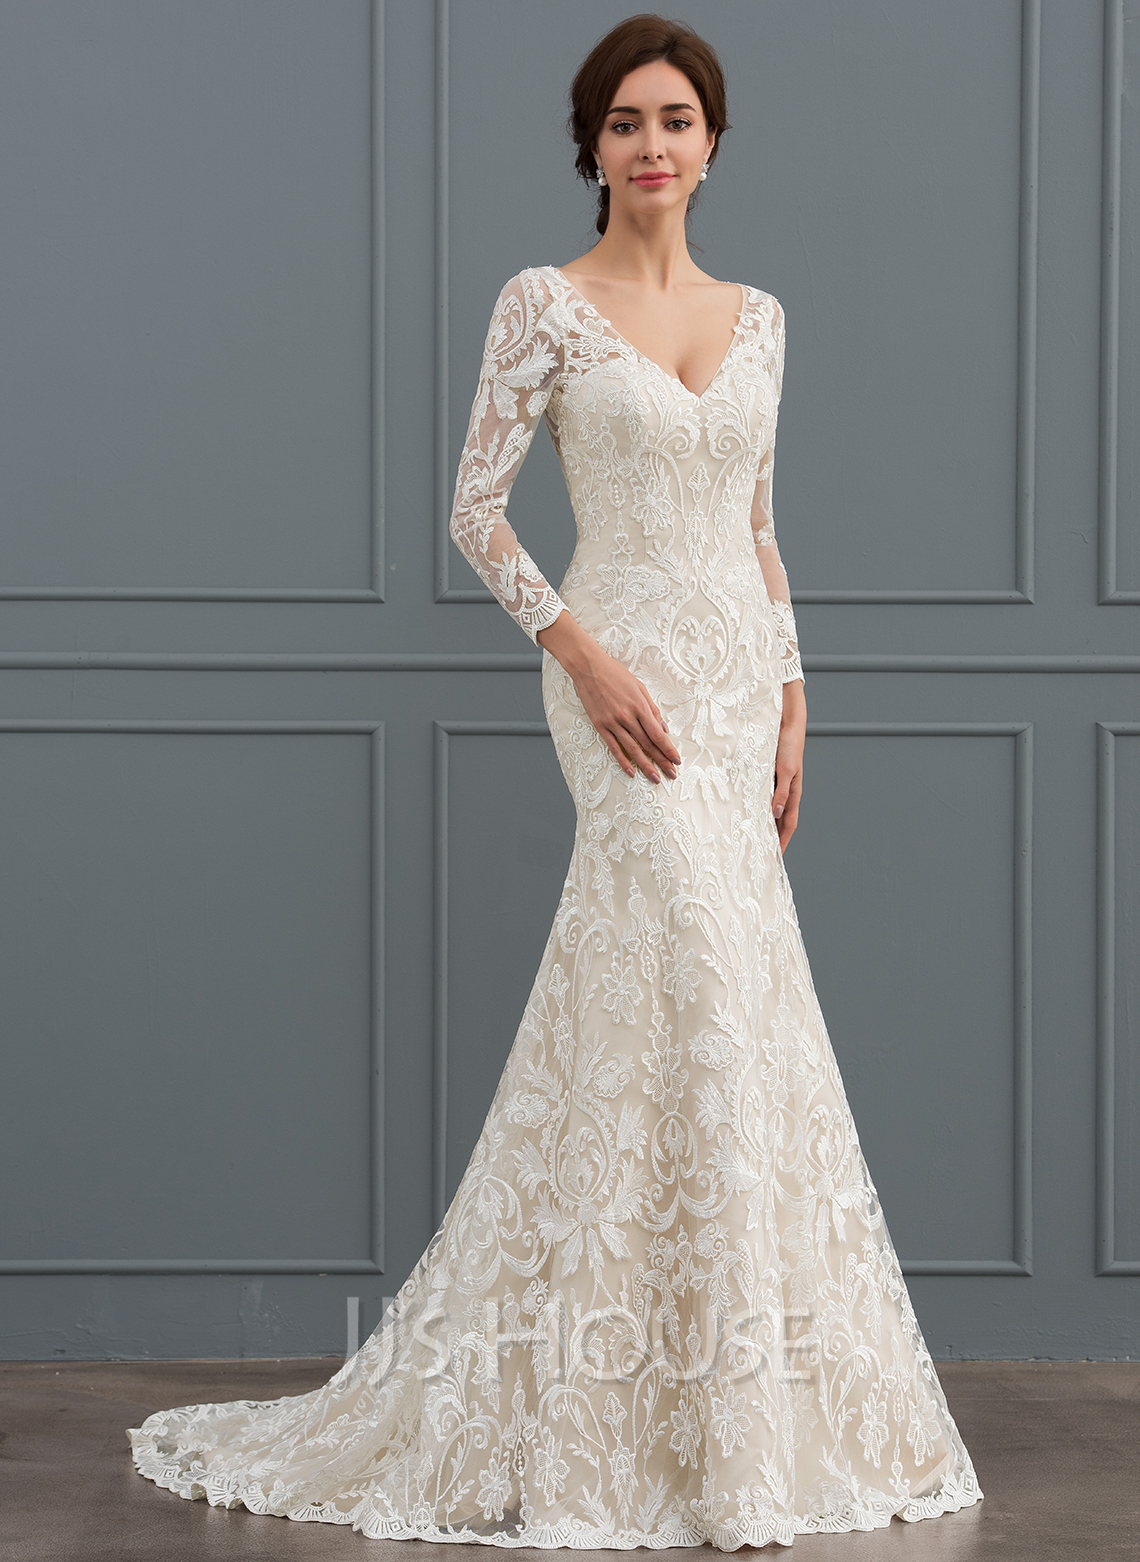 847aa271e8 Trumpet Mermaid V-neck Sweep Train Lace Wedding Dress (002127261 ...